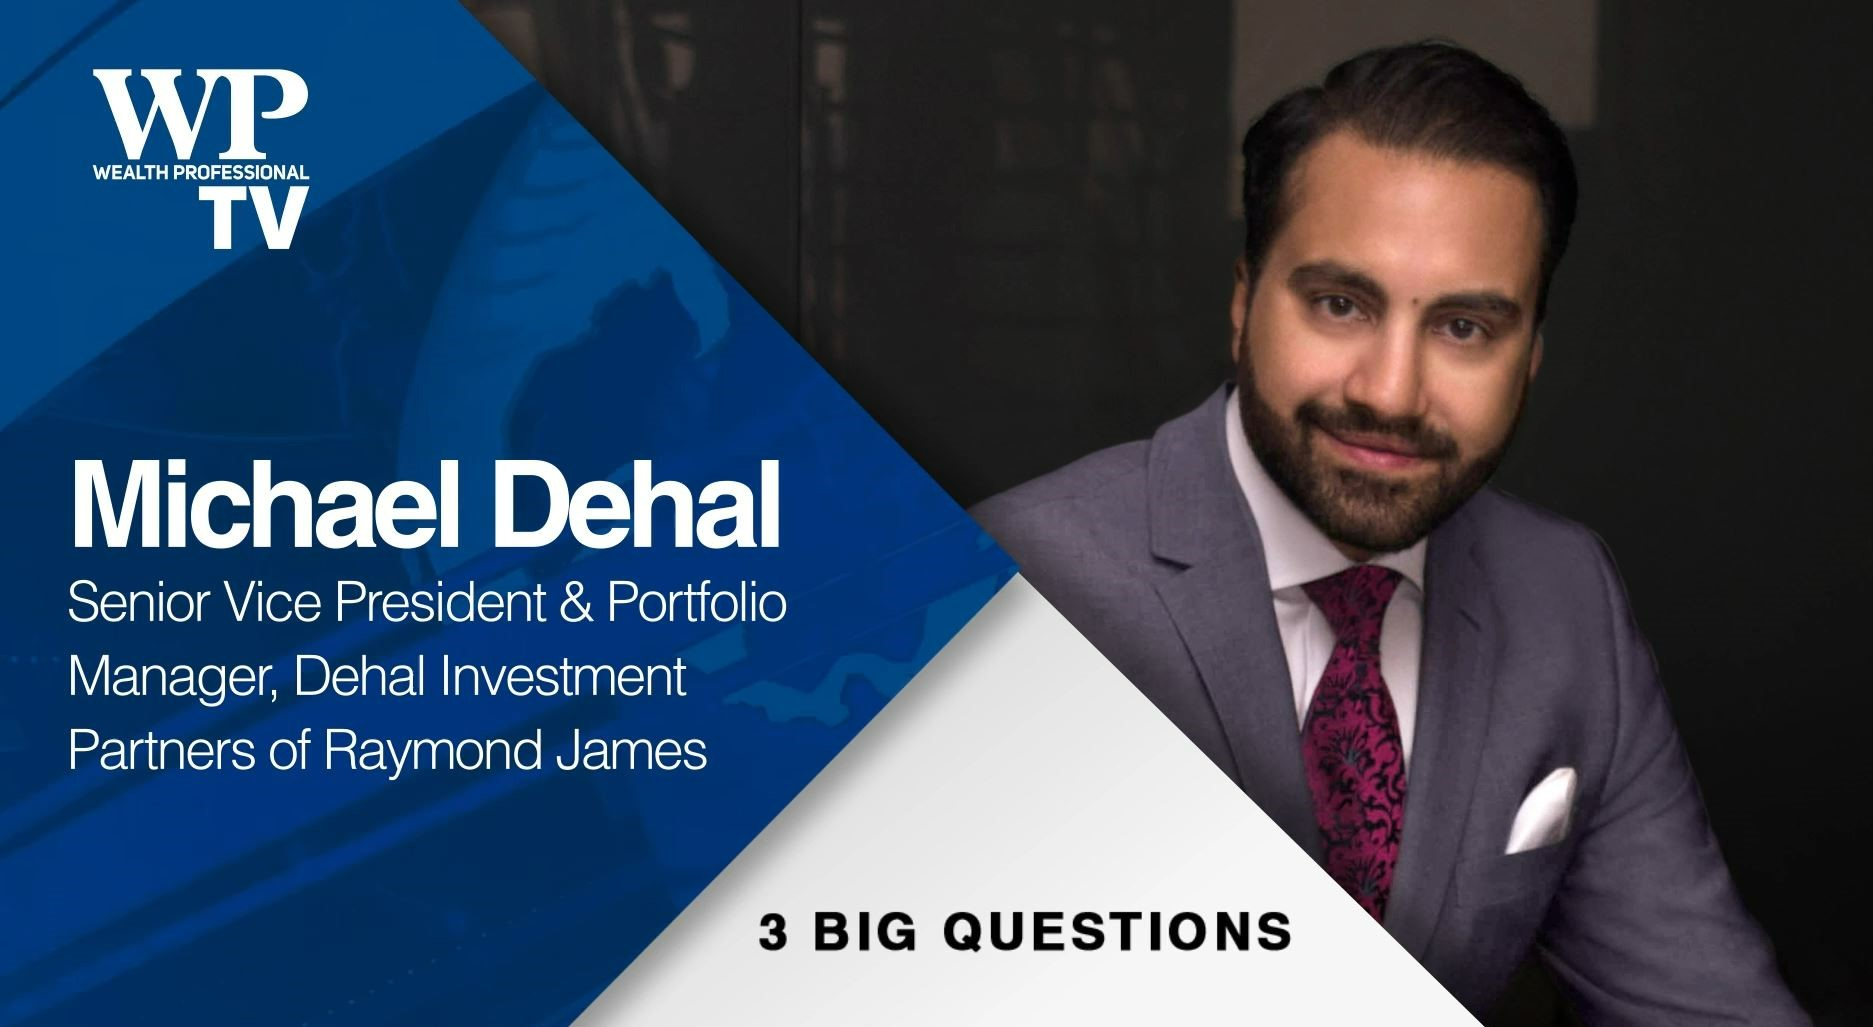 3 Big Questions with Michael Dehal